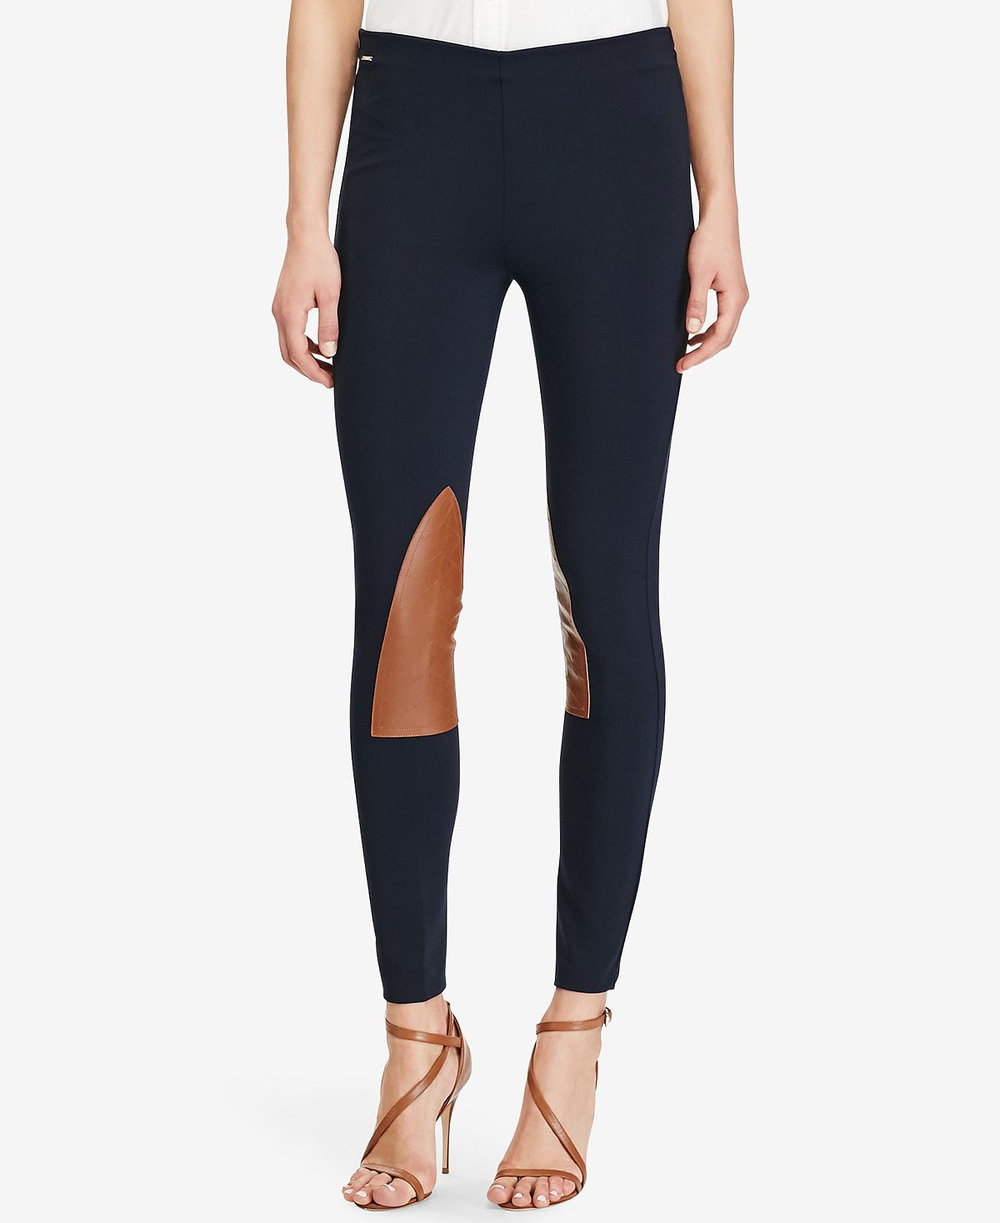 Polo Ralph Lauren Leather-Patch Leggings. Available in navy, black. Macy's. $125.